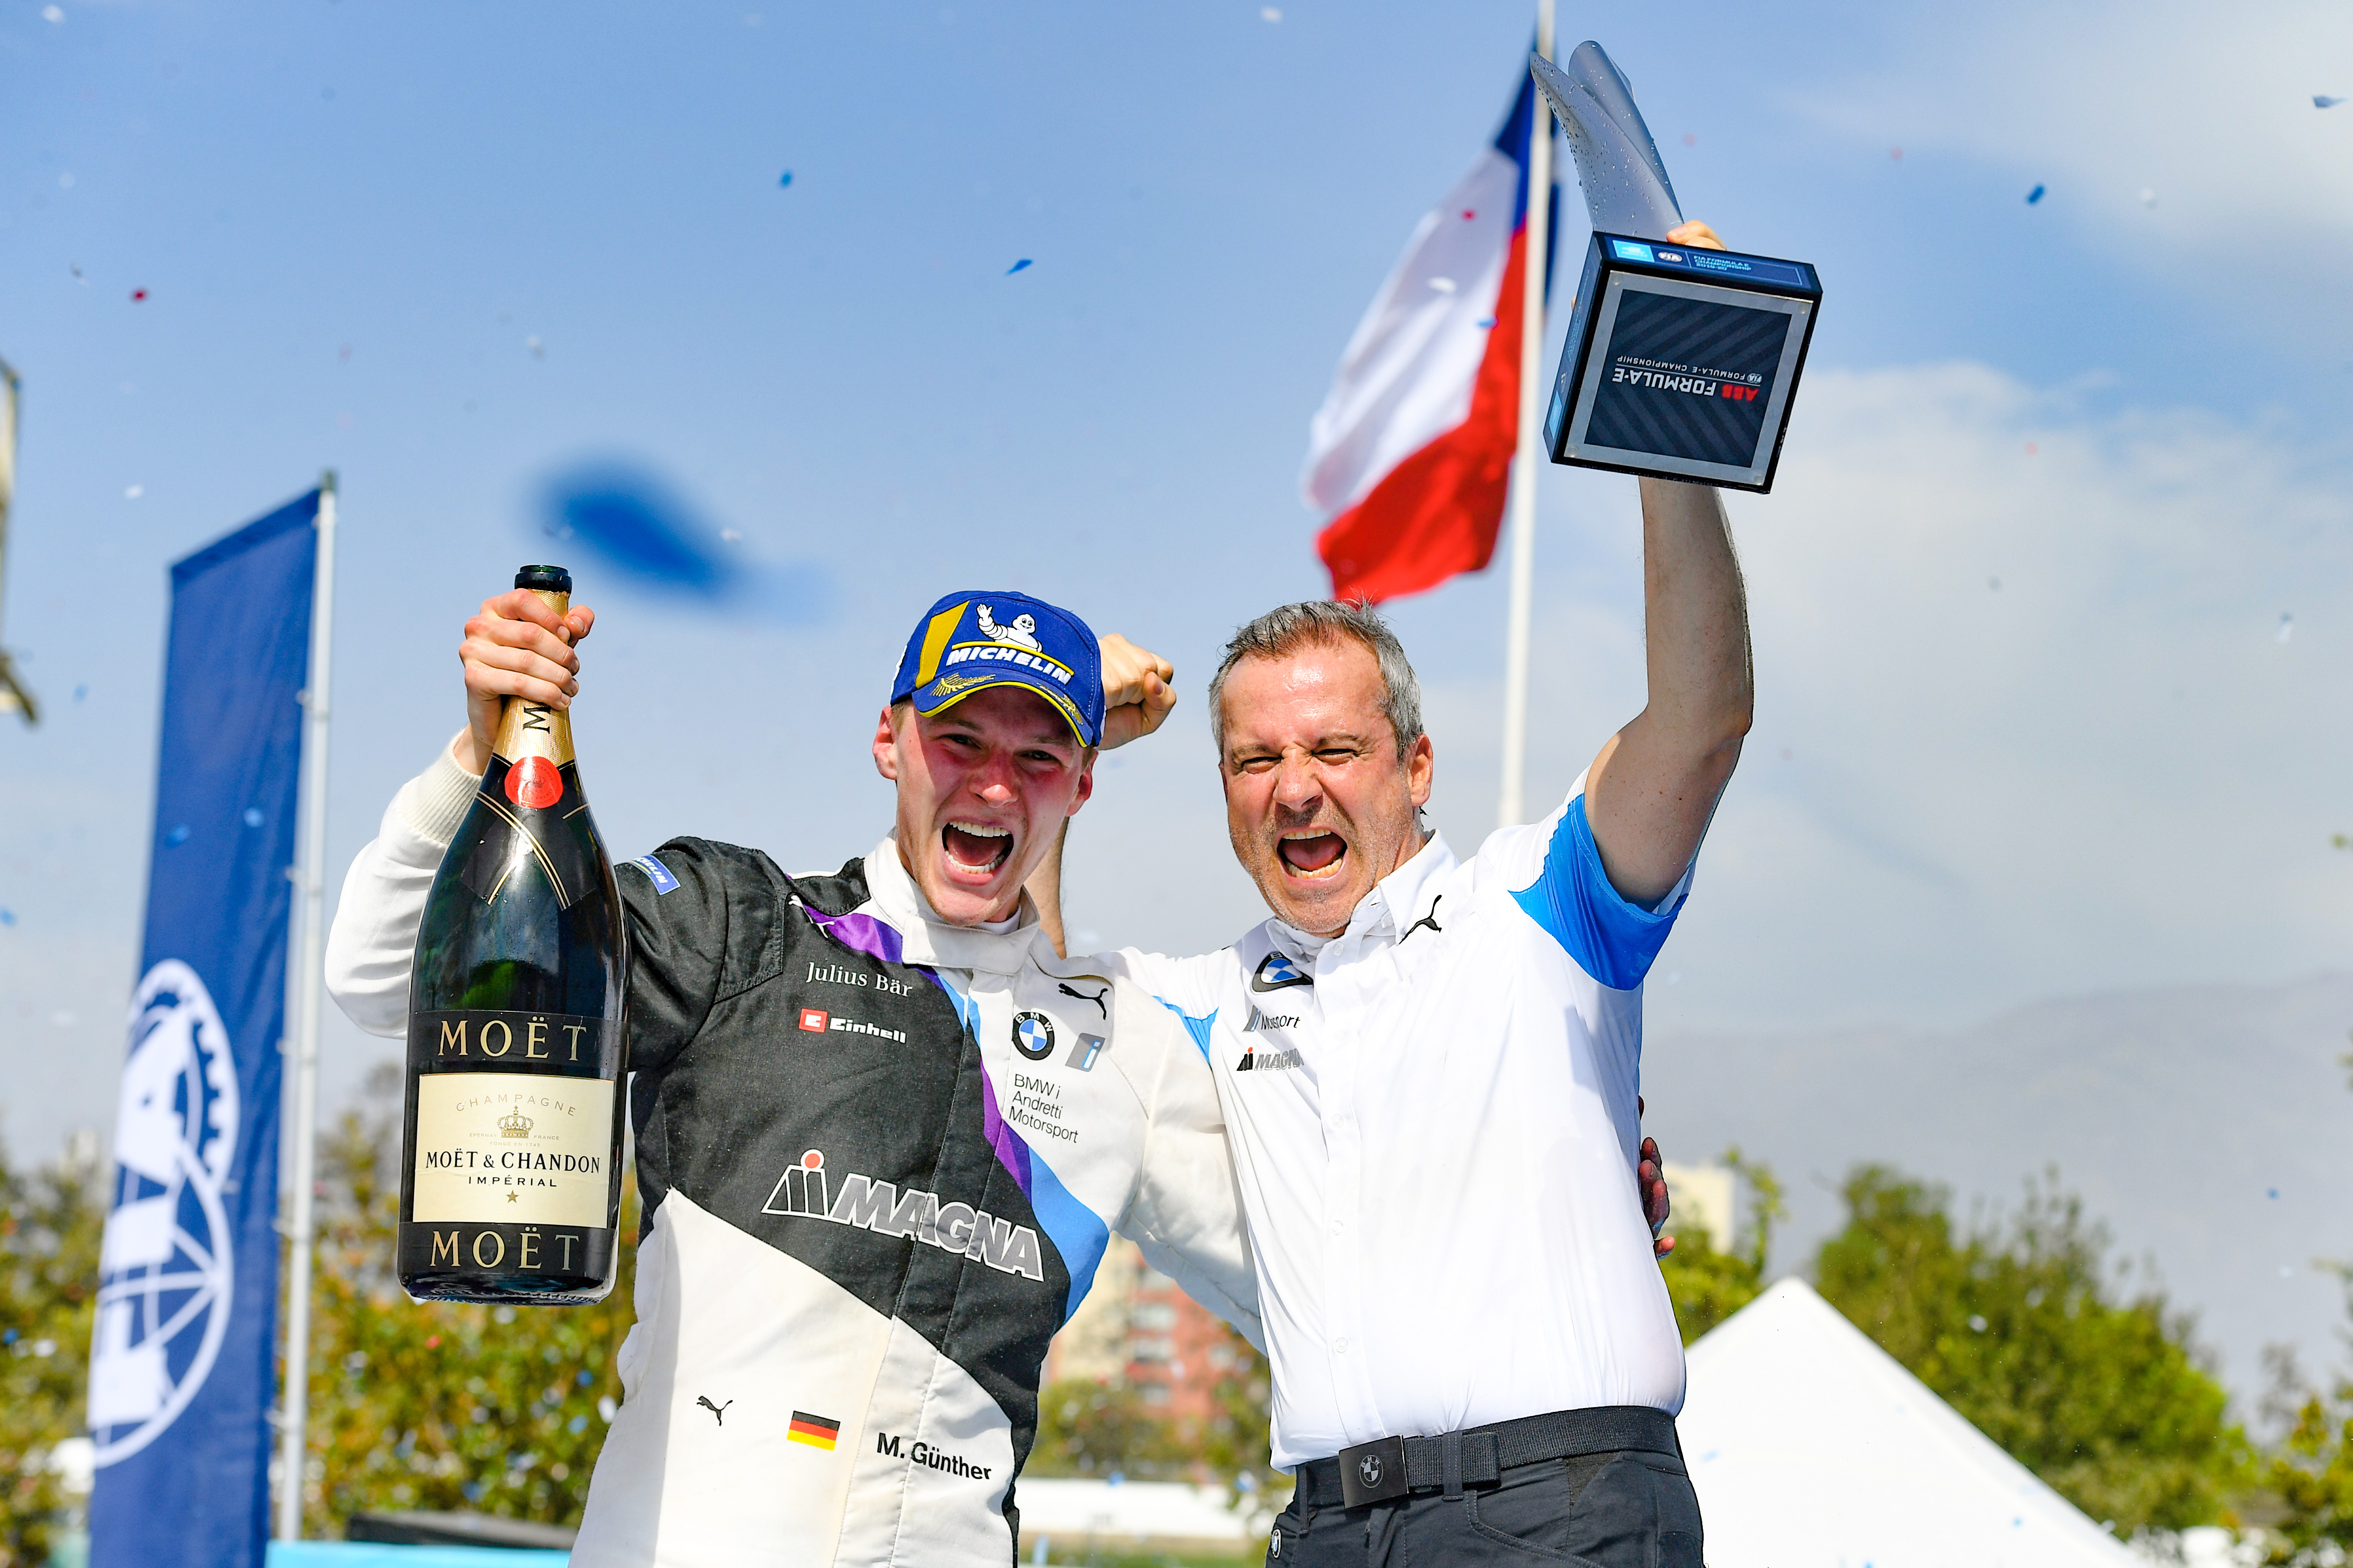 Guenther wins in action packed Santiago E-Prix